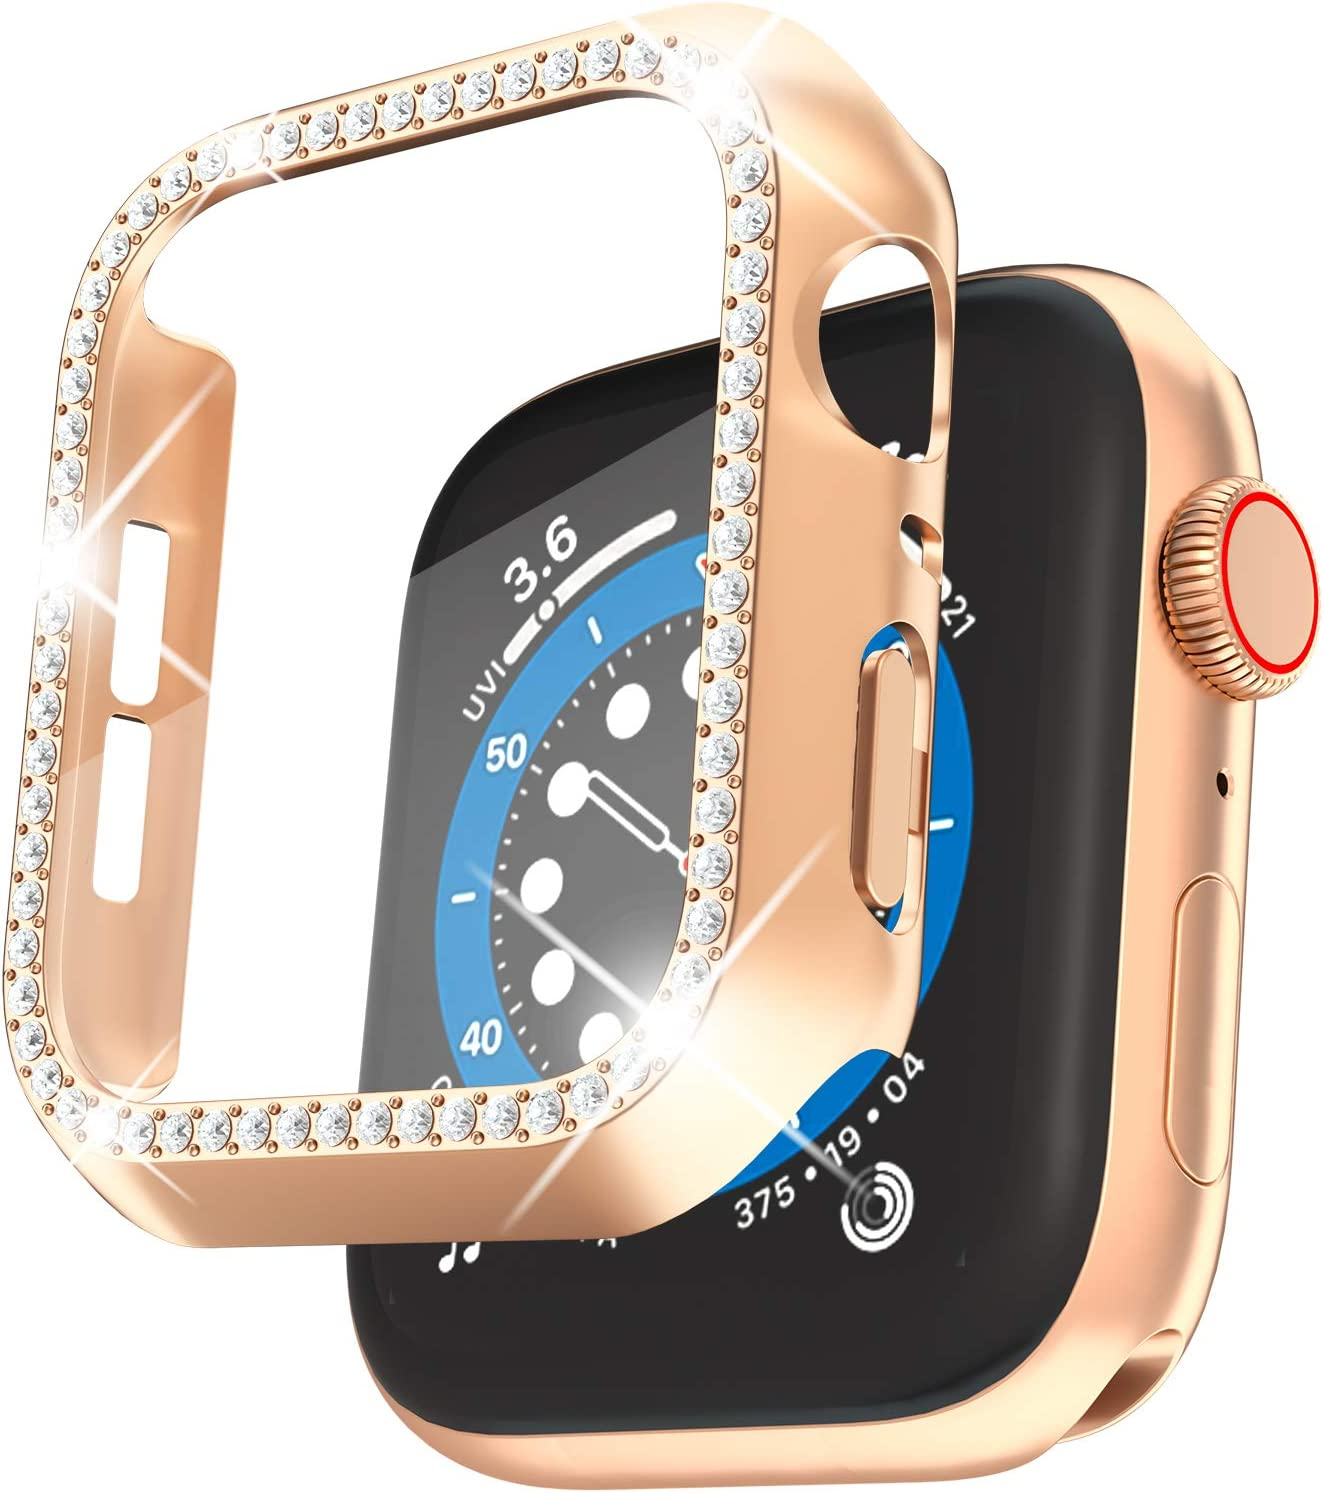 QVLANG Compatible Apple Watch Screen Protector Case 38mm 40mm 42mm 44mm, Bling Series Cover, Women Diamond case with Built-in Screen Protector for iWatch Series 6/5/4/3/2/1/SE (Rose Gold, 40mm)